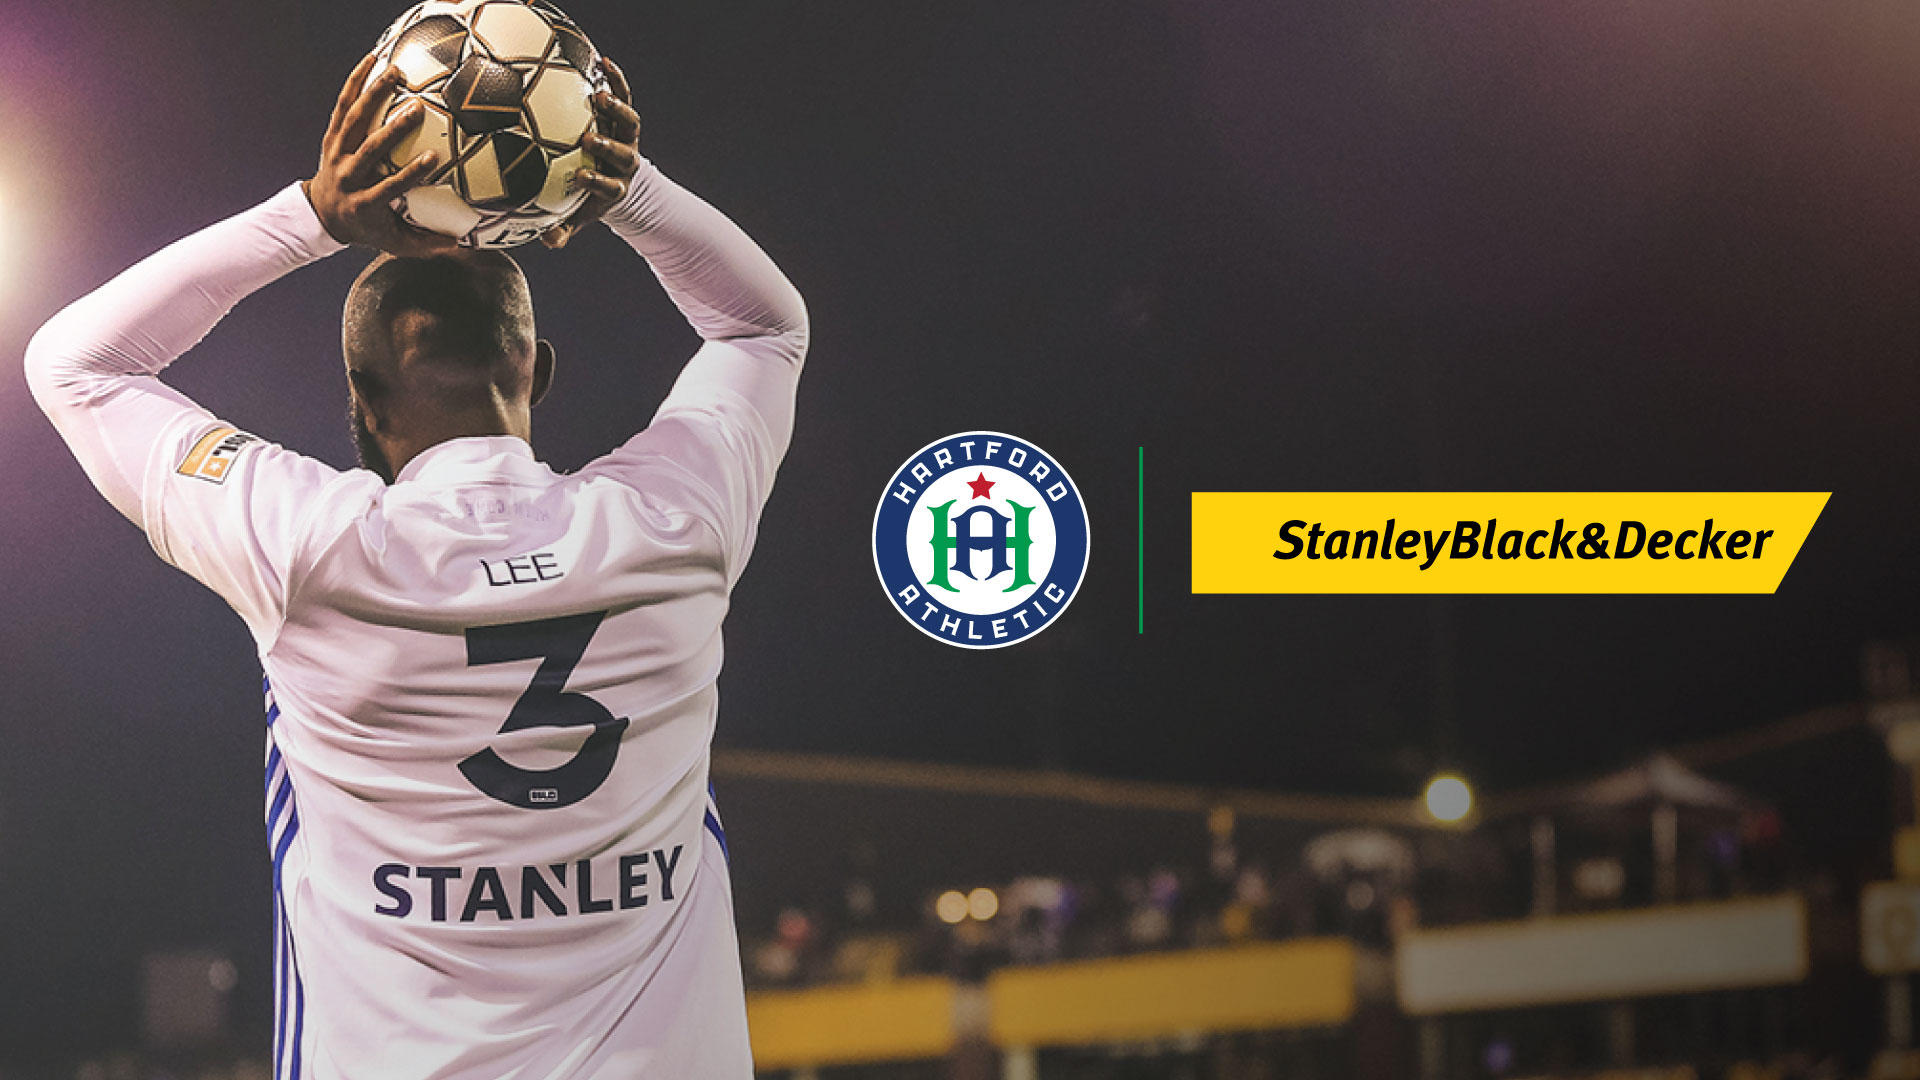 Hartford Athletic Announces Stanley Black & Decker as Founding Partner